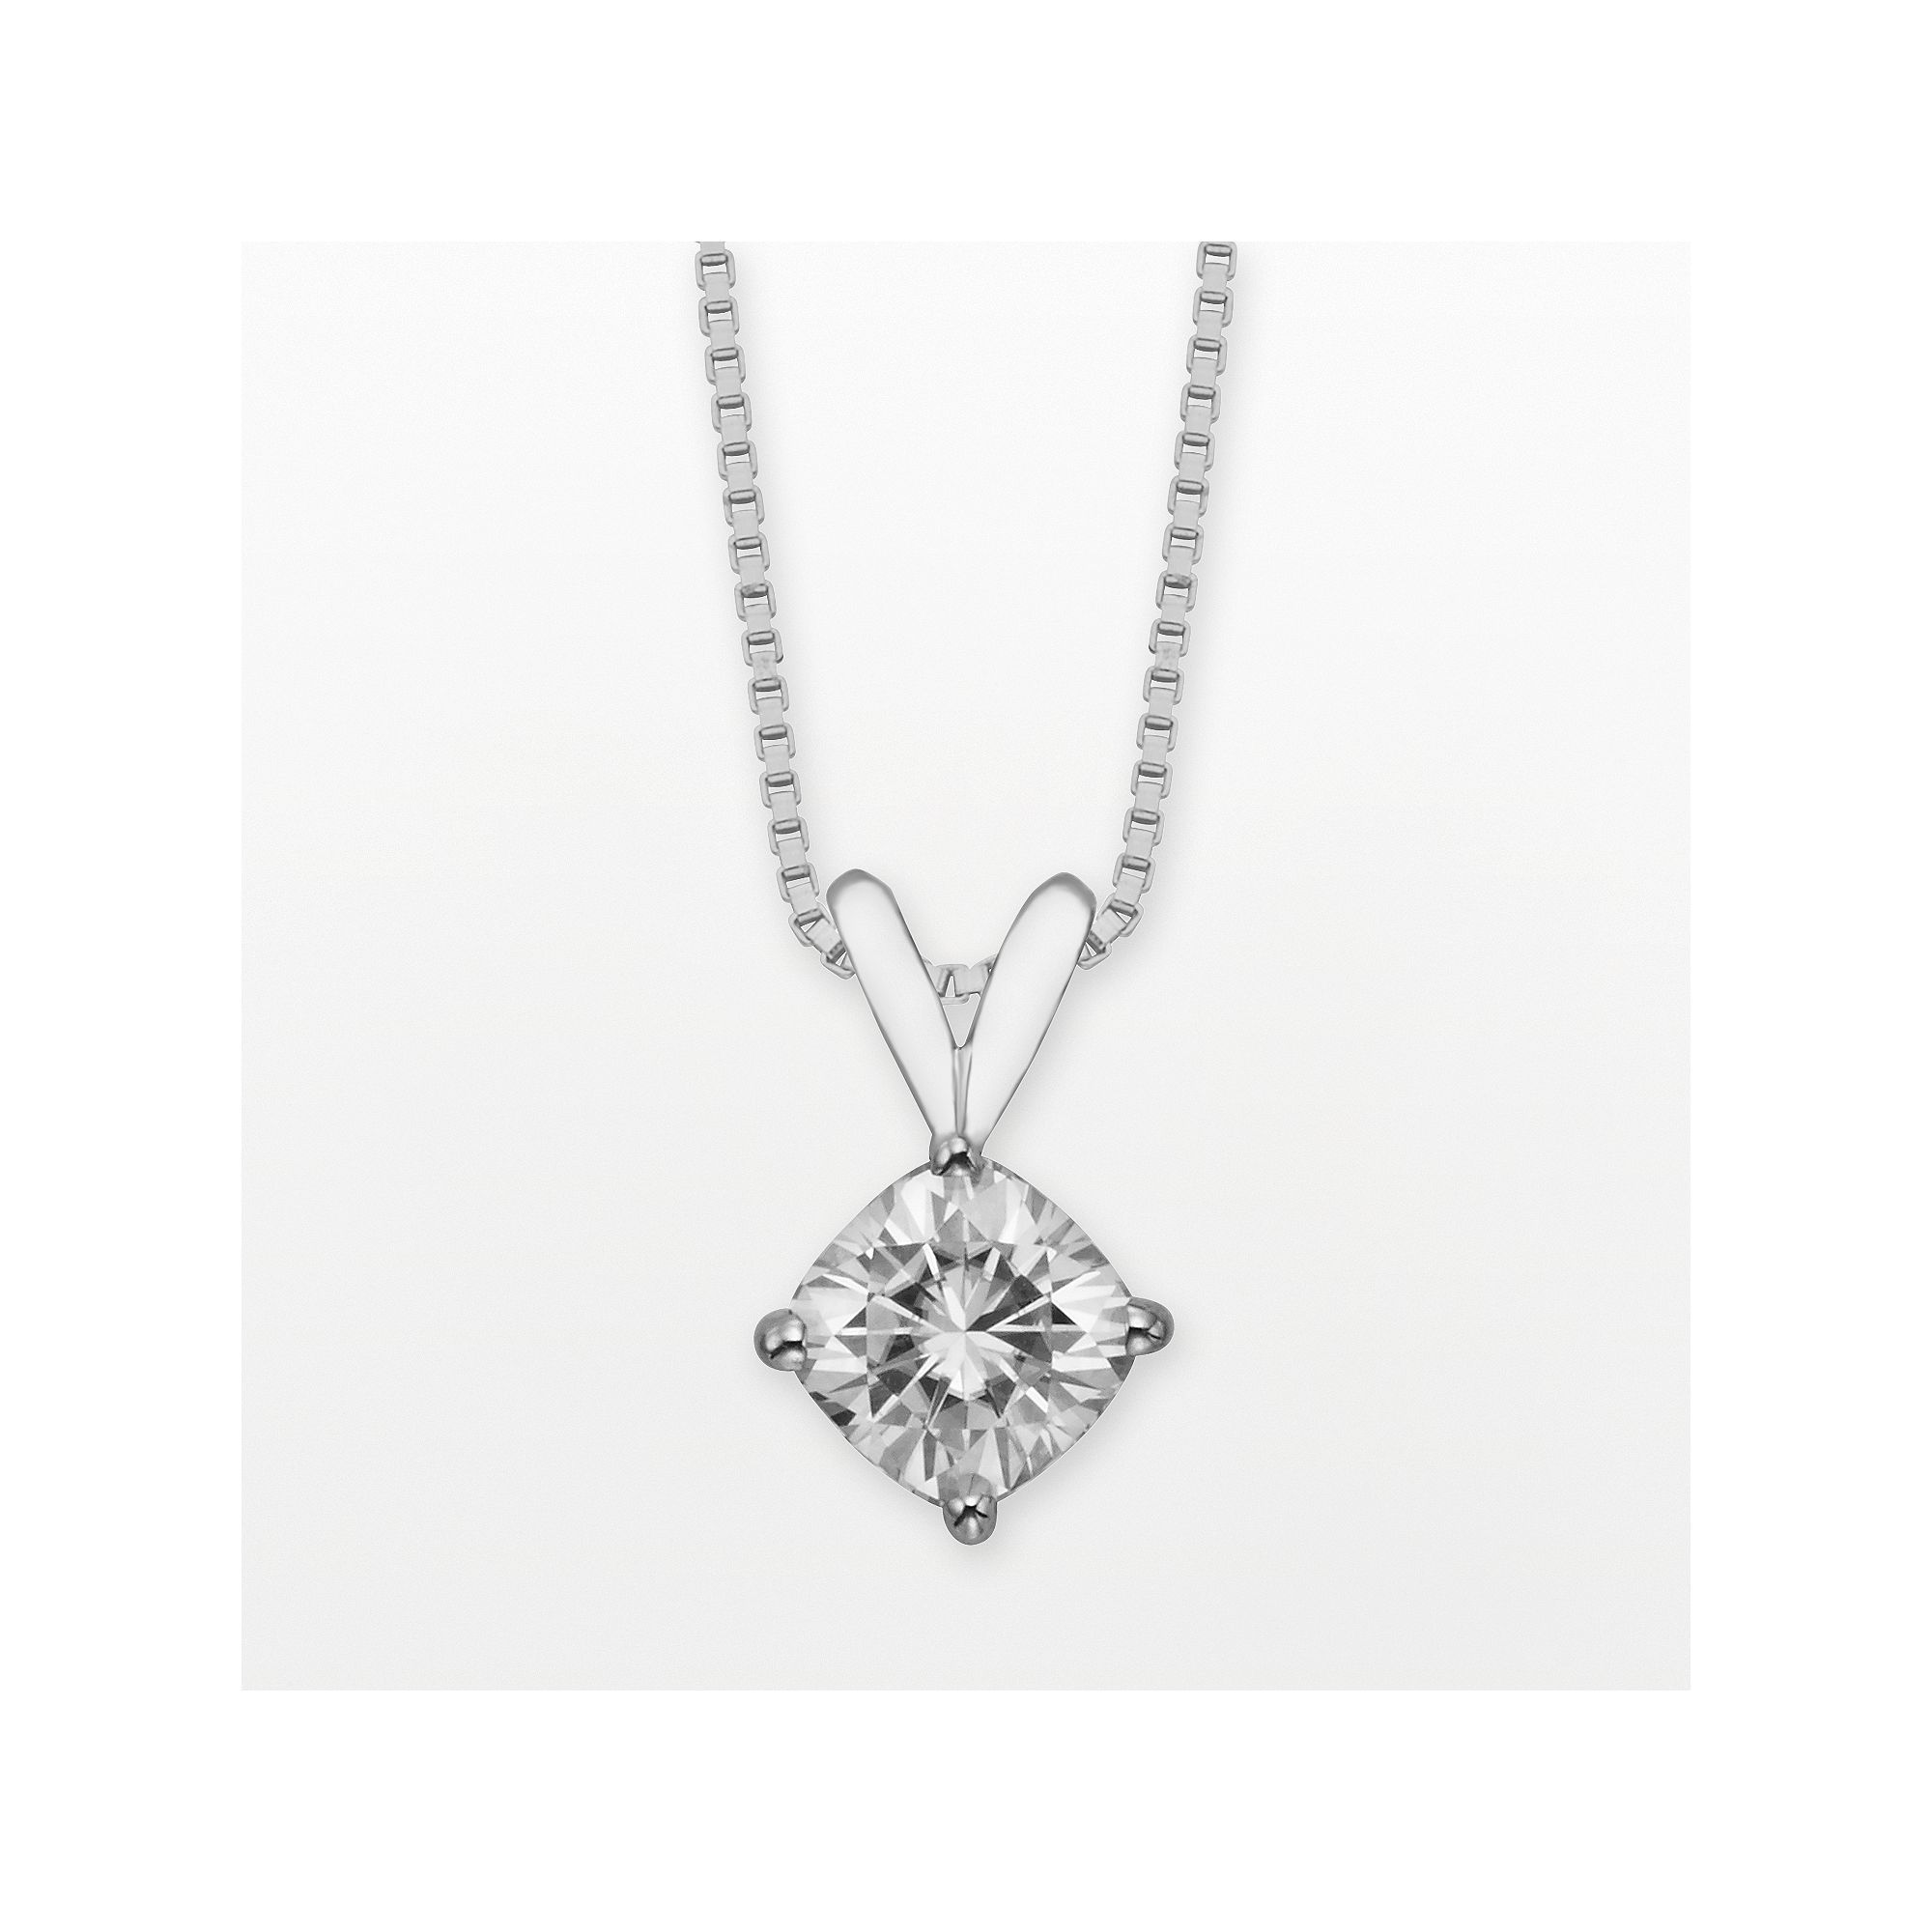 adeb premium moissy necklace jewellery fine bracelet online products moissanite affordable station